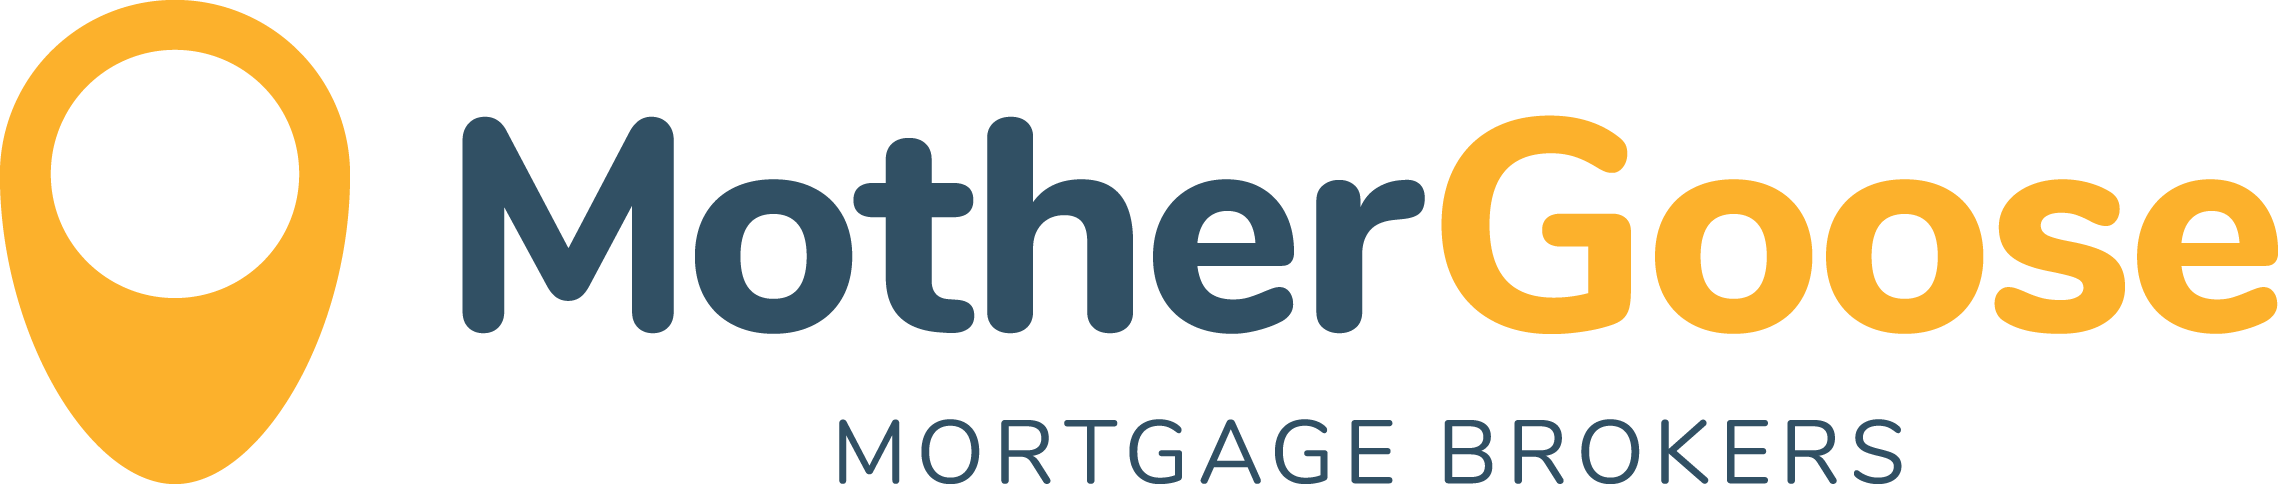 Our main aim at Mother Goose Mortgages is to take some of the pressure and confusion out of purchasing or remortgaging